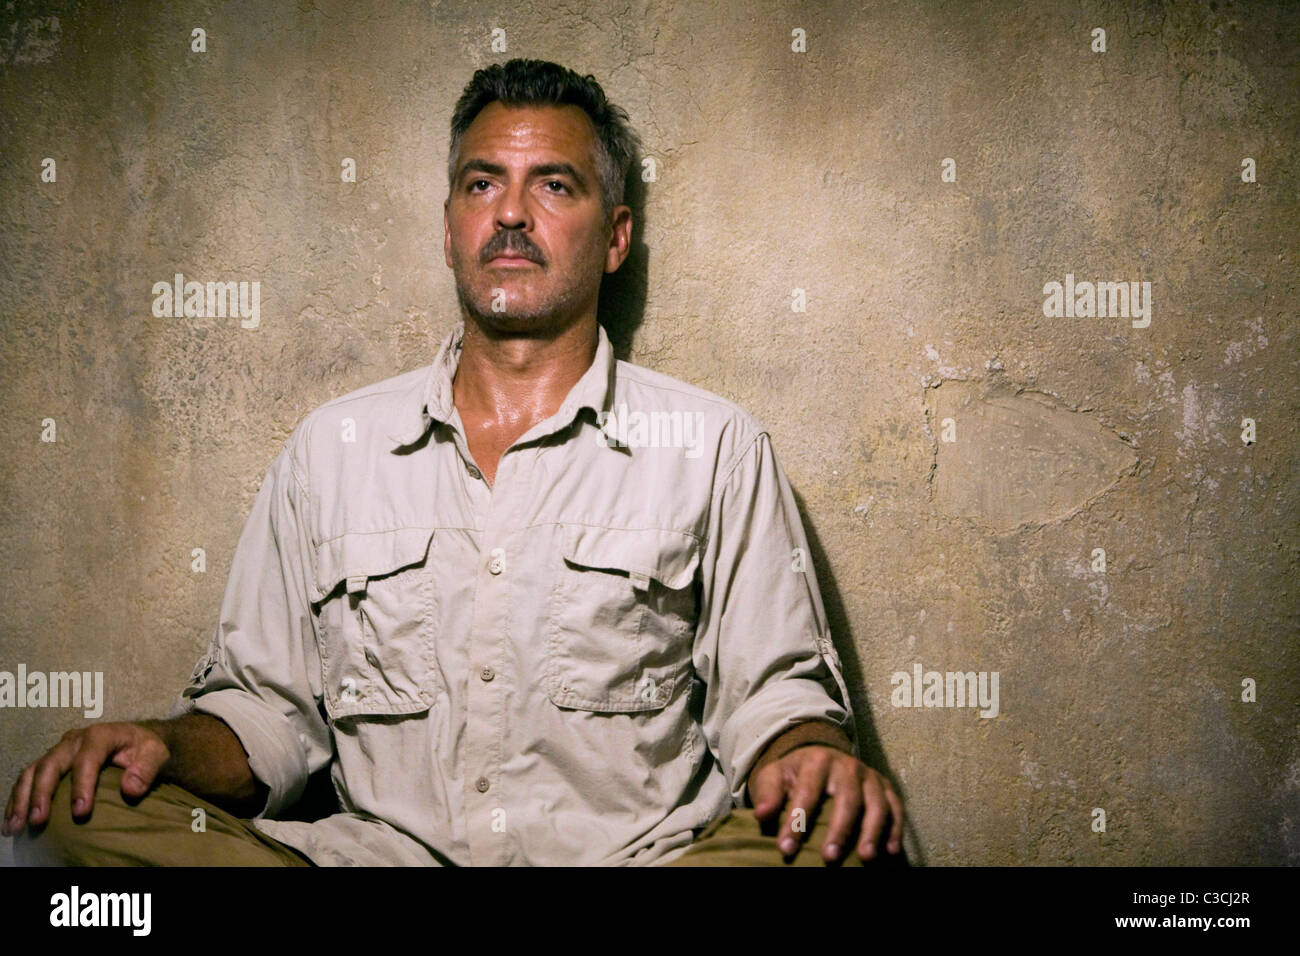 GEORGE CLOONEY THE MEN WHO STARE AT GOATS (2009) - Stock Image